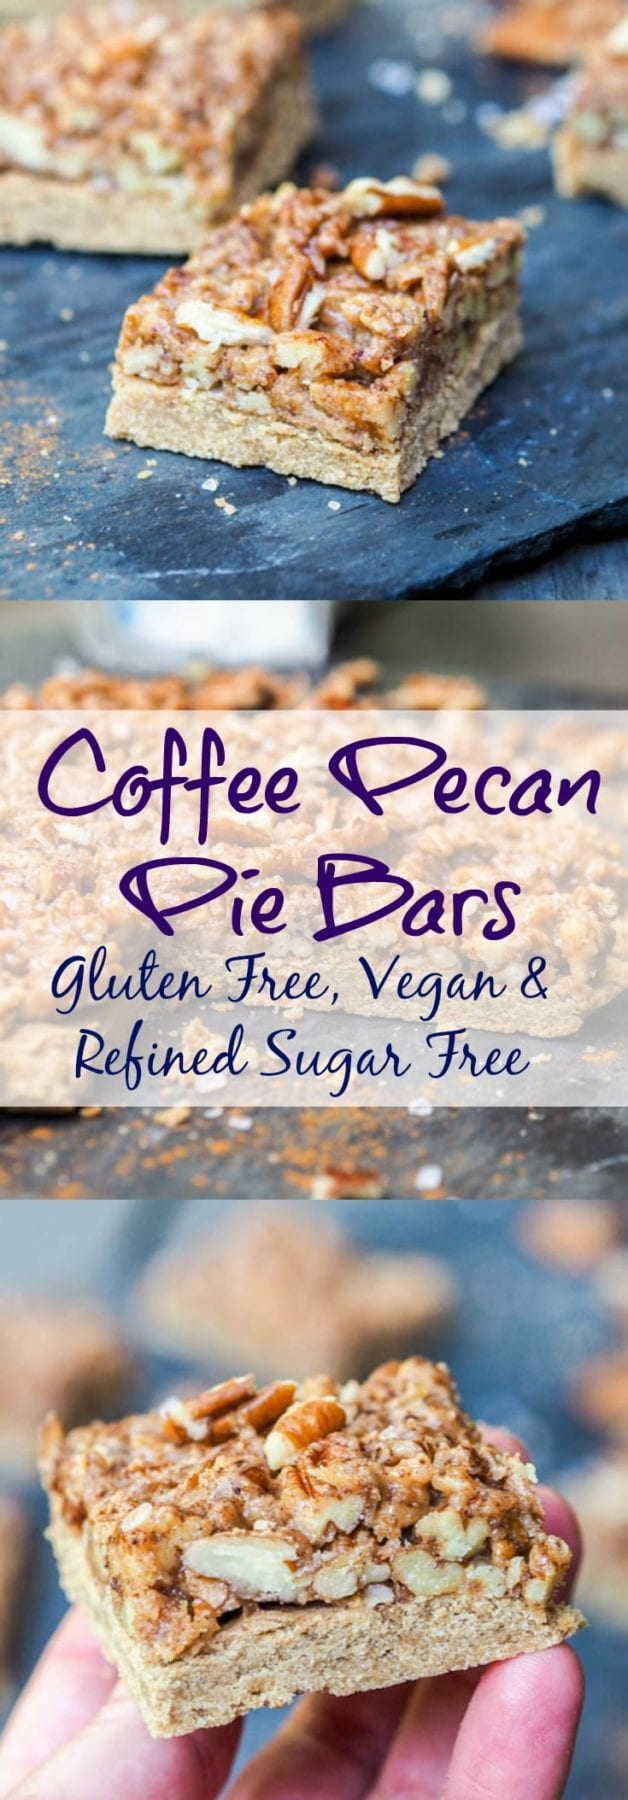 Share your love for those around you this holiday season by treating them to homemade baked goods like these vegan, gluten-free and refined sugar free Coffee Pecan Pie Bars. Made with only 7 ingredients! AD